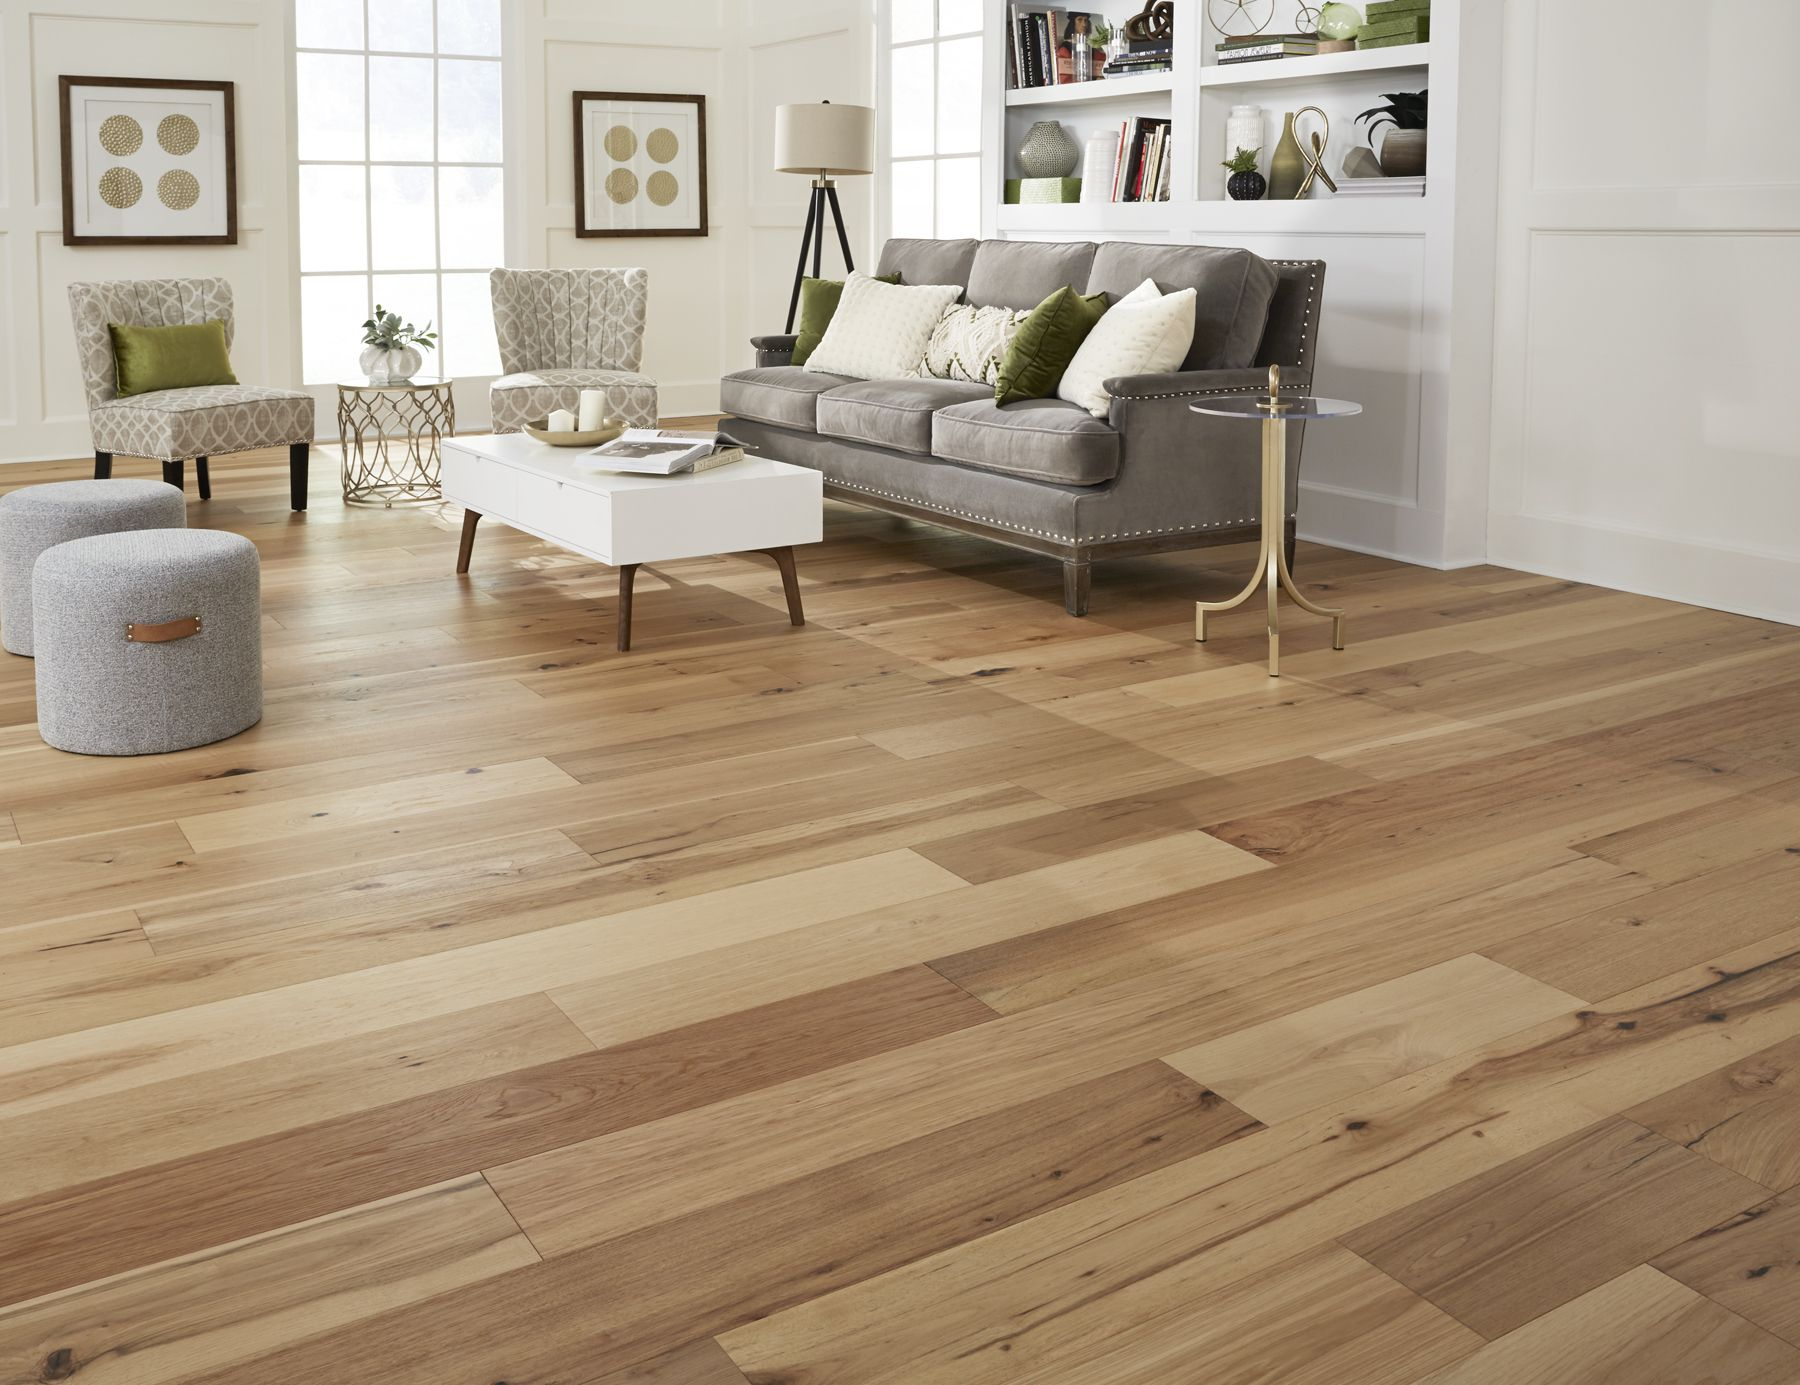 Virginia Mill Works Engineered 9 16 X 7 1 2 Rustic Hickory Engin Engineered Hardwood Flooring Wood Floors Wide Plank Engineered Hardwood Flooring Wide Plank